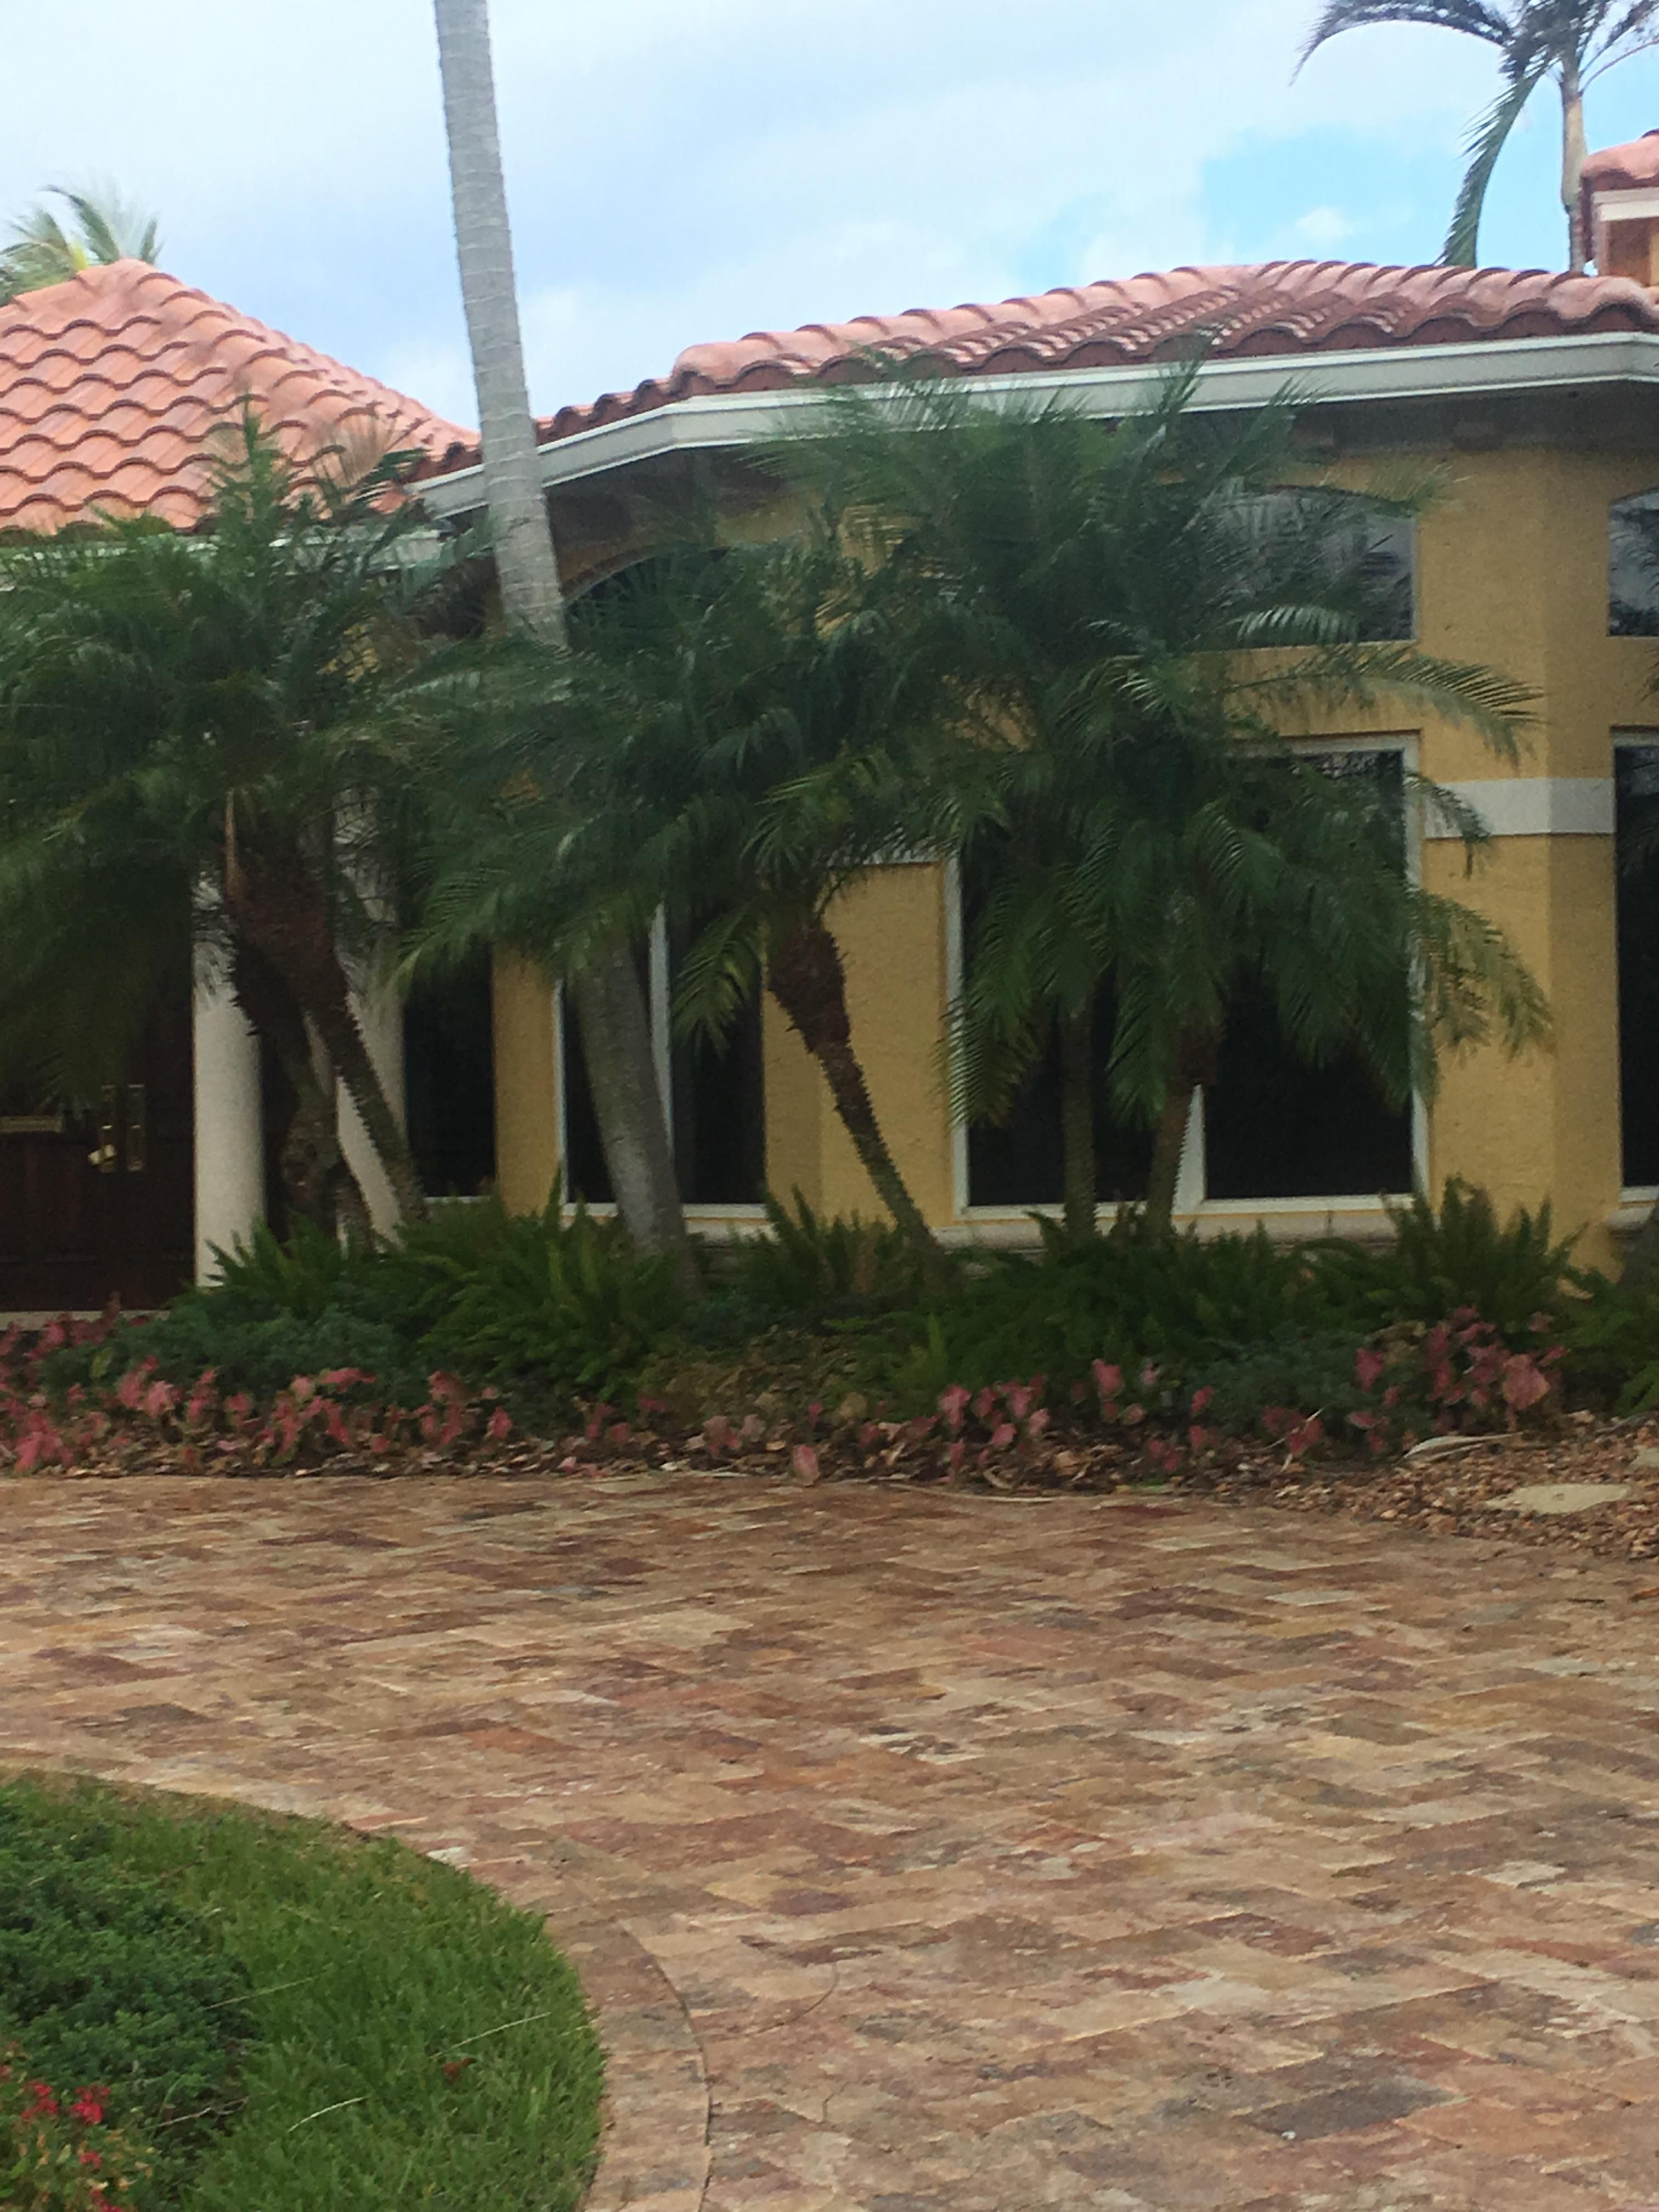 best impact windows hurricane shutters impact windows fort lauderdale makes certain that people will always sense they are in good hands every stage of the project